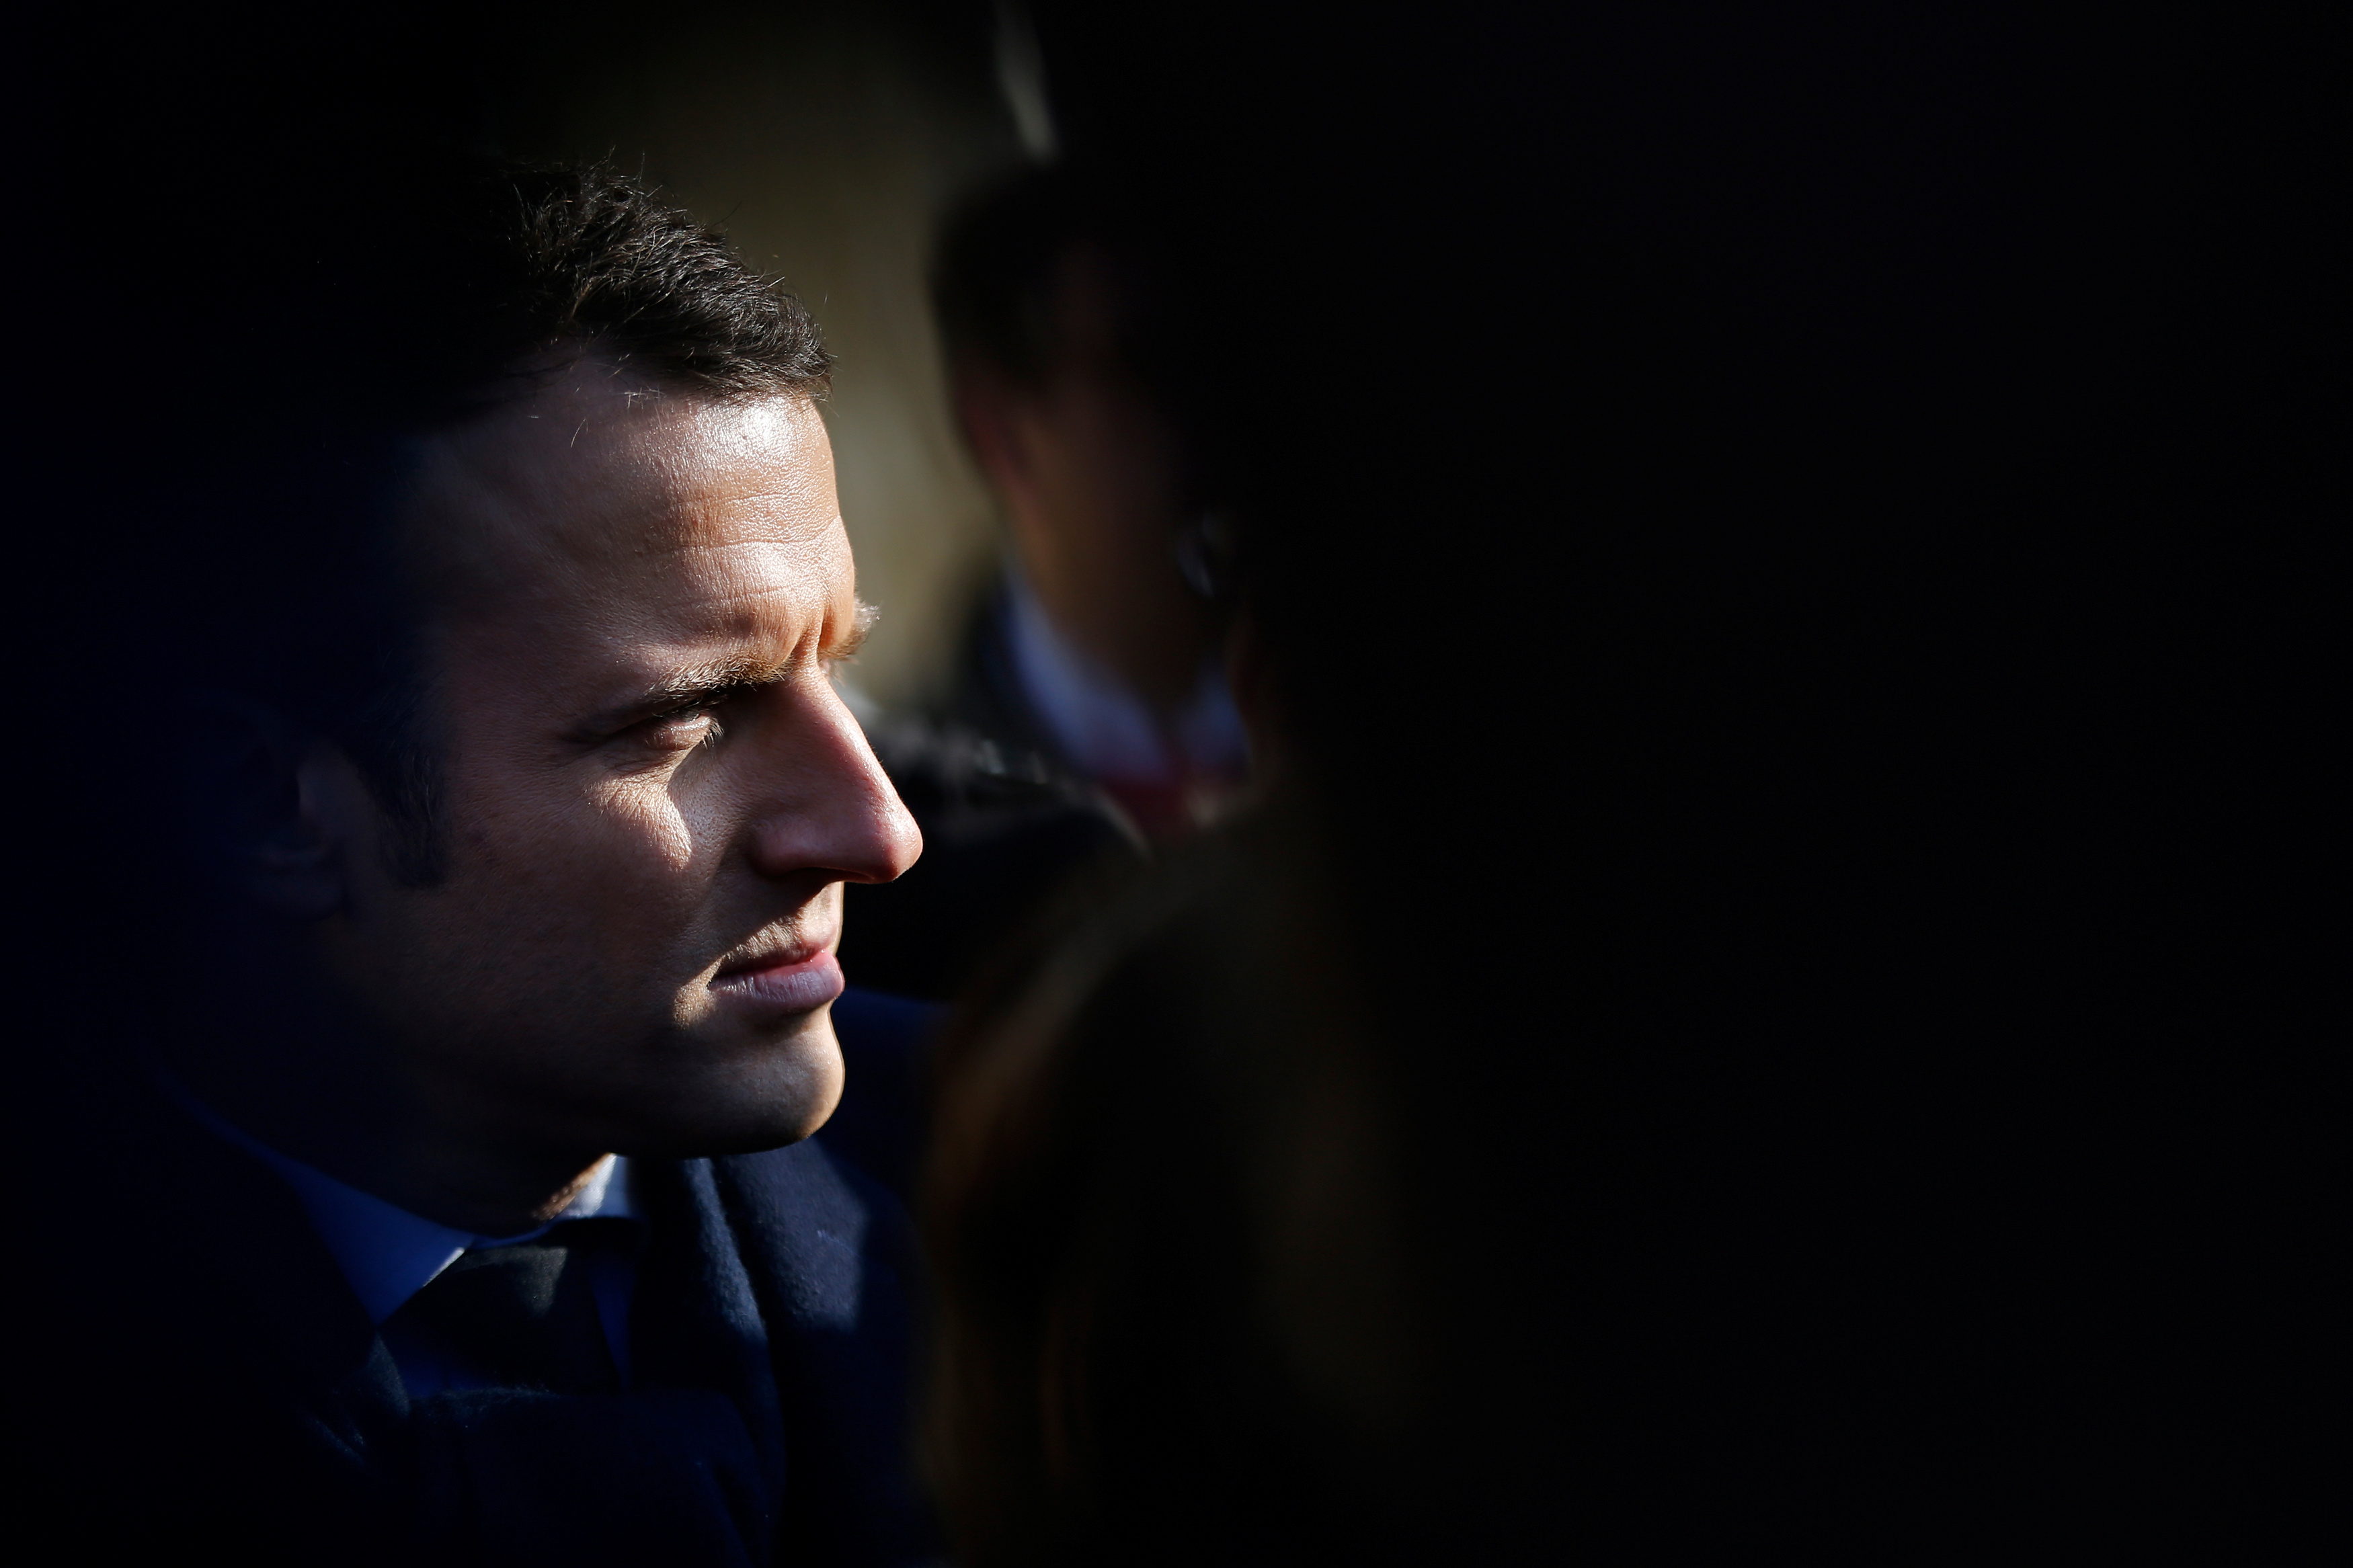 Emmanuel Macron, head of the political movement En Marche !, or Onwards !, and candidate for the 2017 presidential election, attends a visit in a farm in Montlouis-sur-Loire near Tours